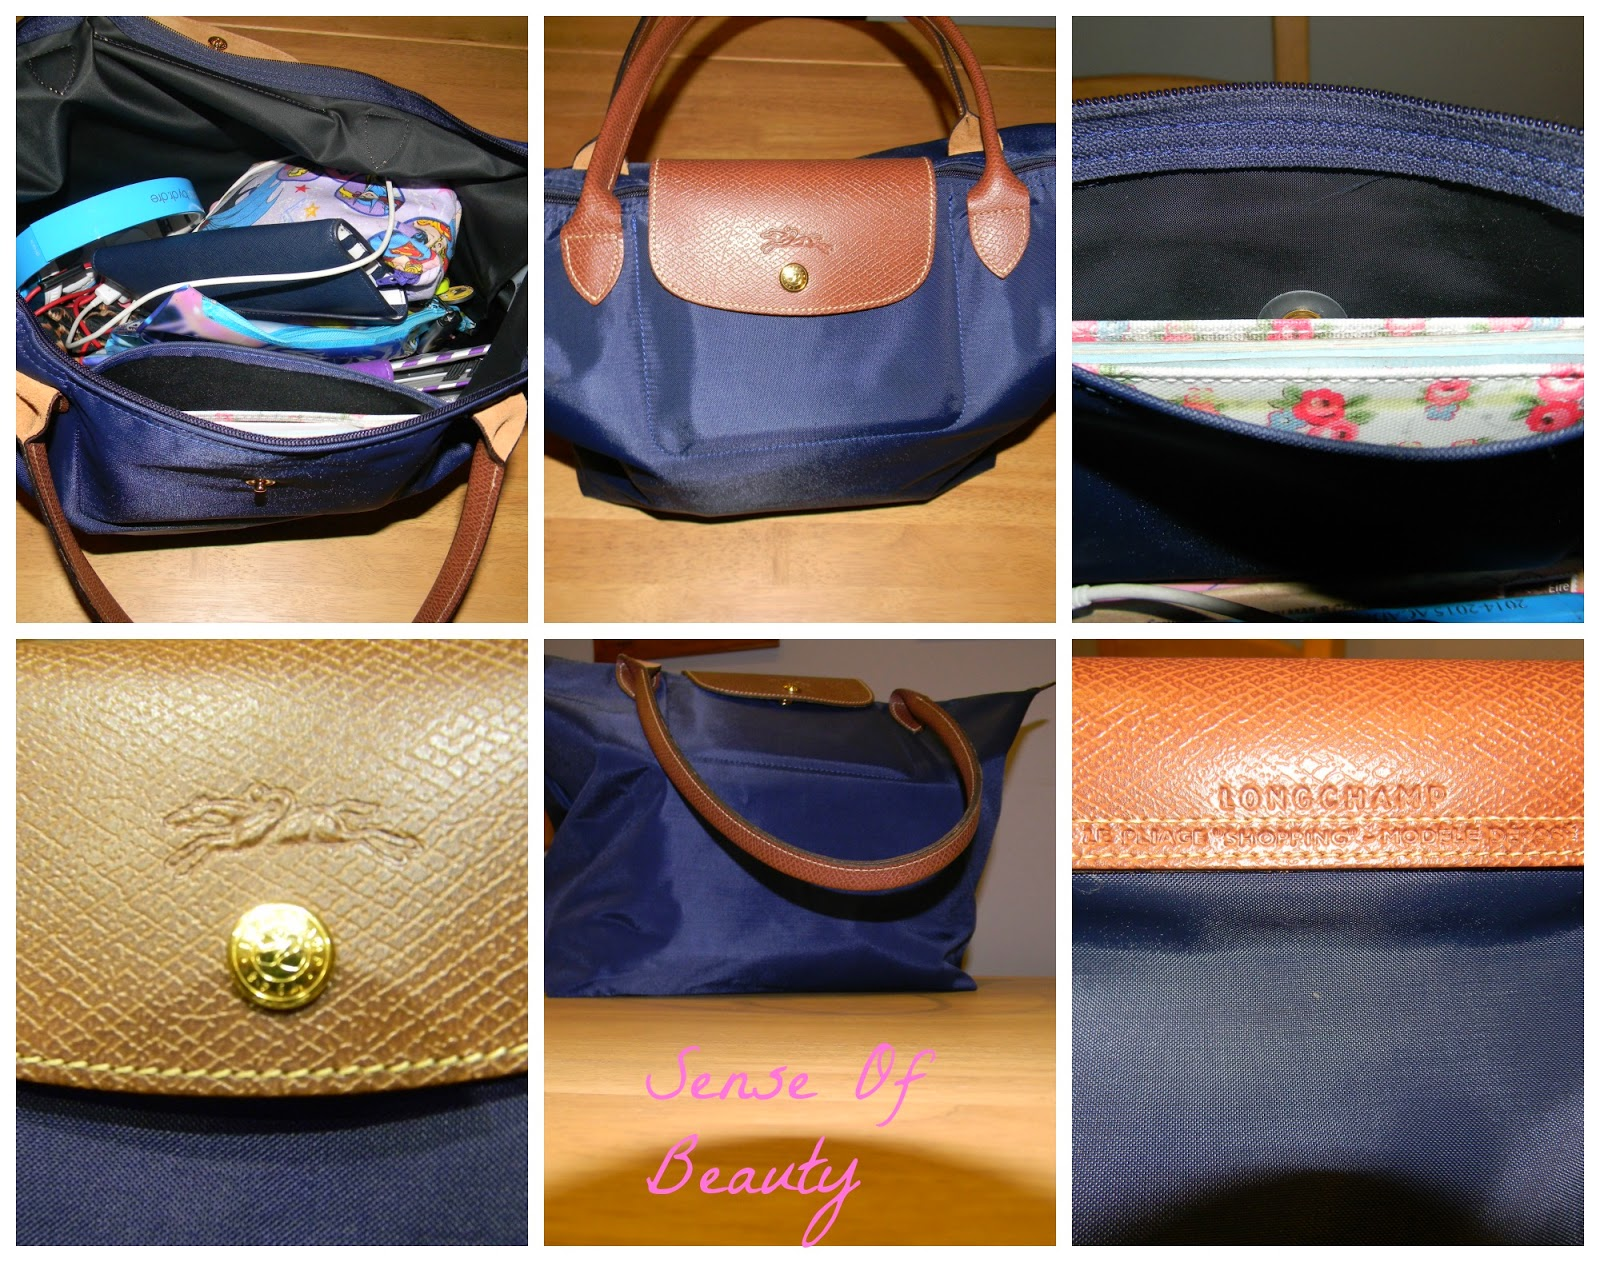 4d753240c761 The bag I purchased was the Longchamp Le Pliage in the size large. I bought  the bag in the colour navy. The bag is navy with brown leather features and  ...